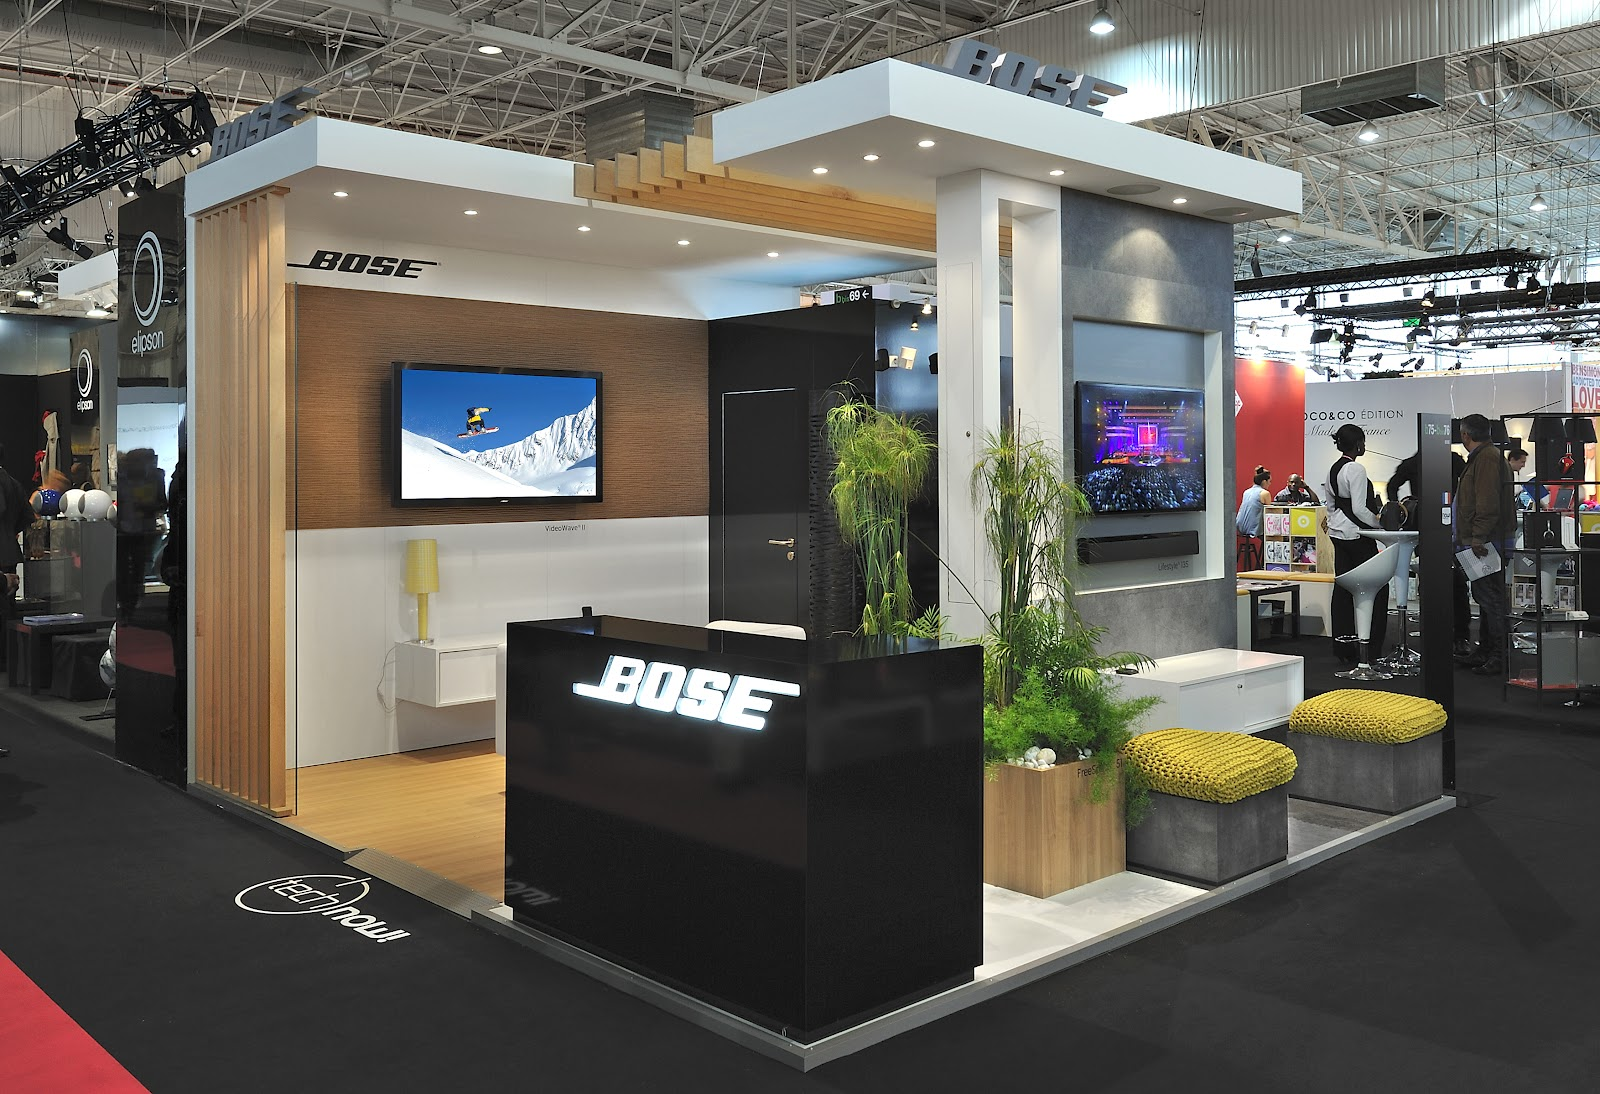 design de l 39 v nement stand bose salon maison objet septembre 2012. Black Bedroom Furniture Sets. Home Design Ideas